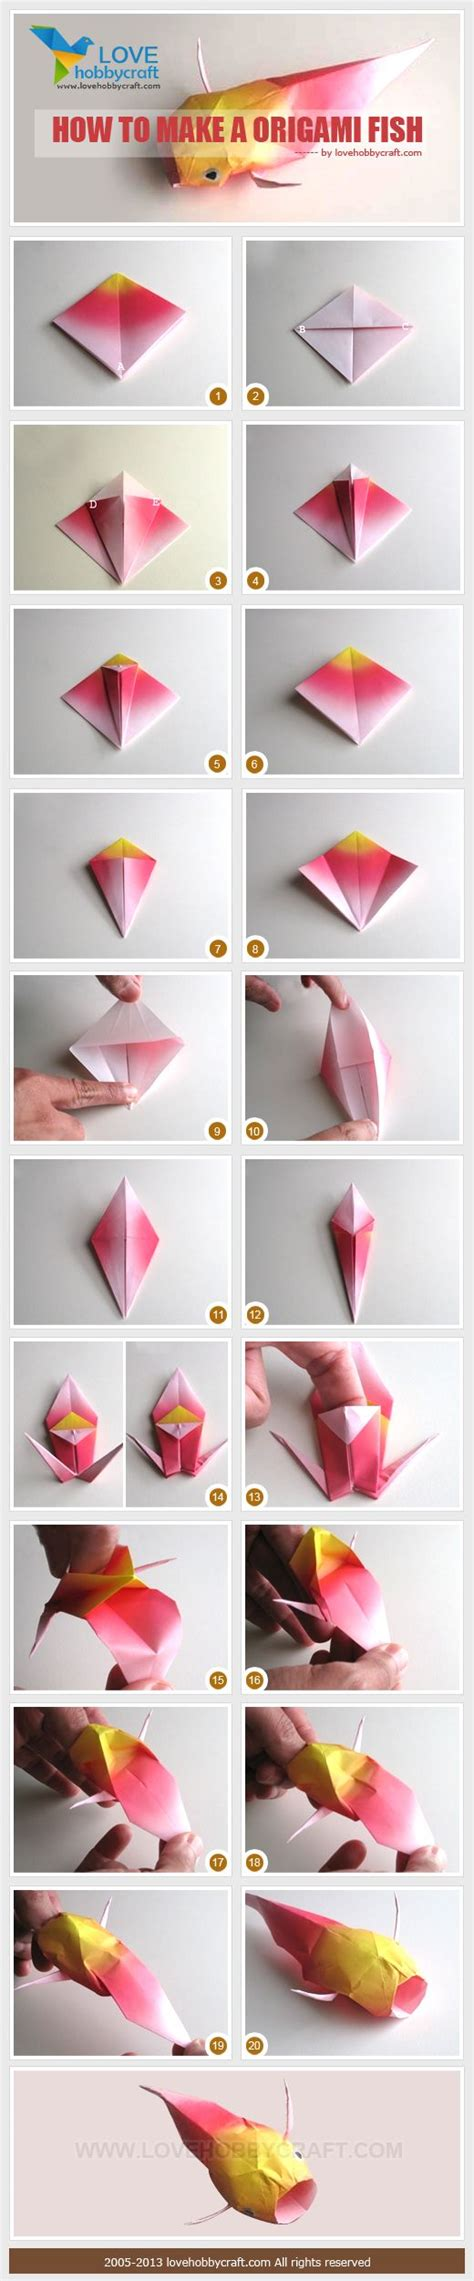 How To Make Origami Koi Fish - the 25 best ideas about origami fish on